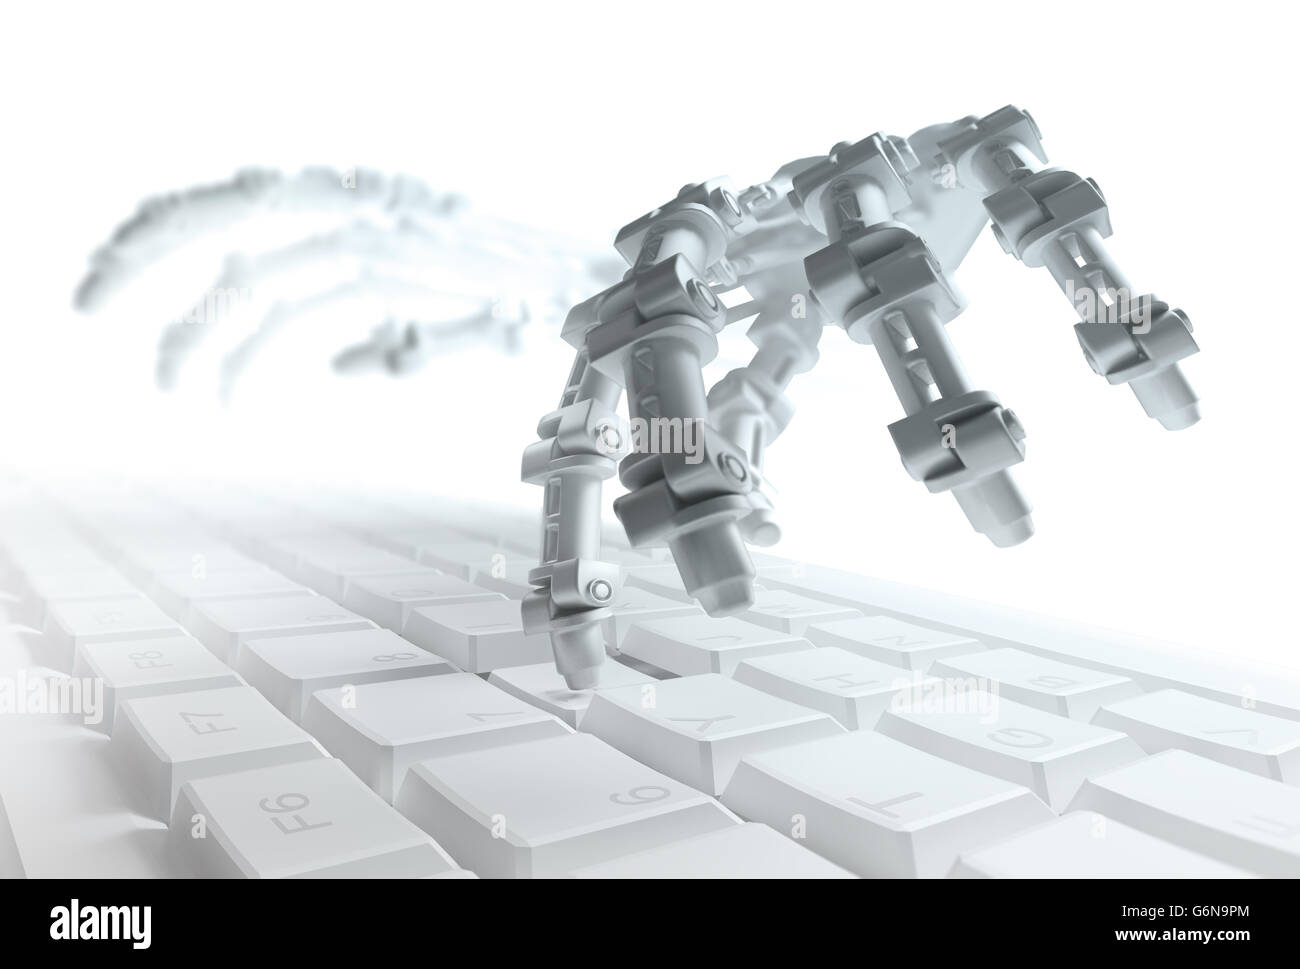 Robot typing on a computer keyboard - automation and AI research concept 3d illustration - Stock Image